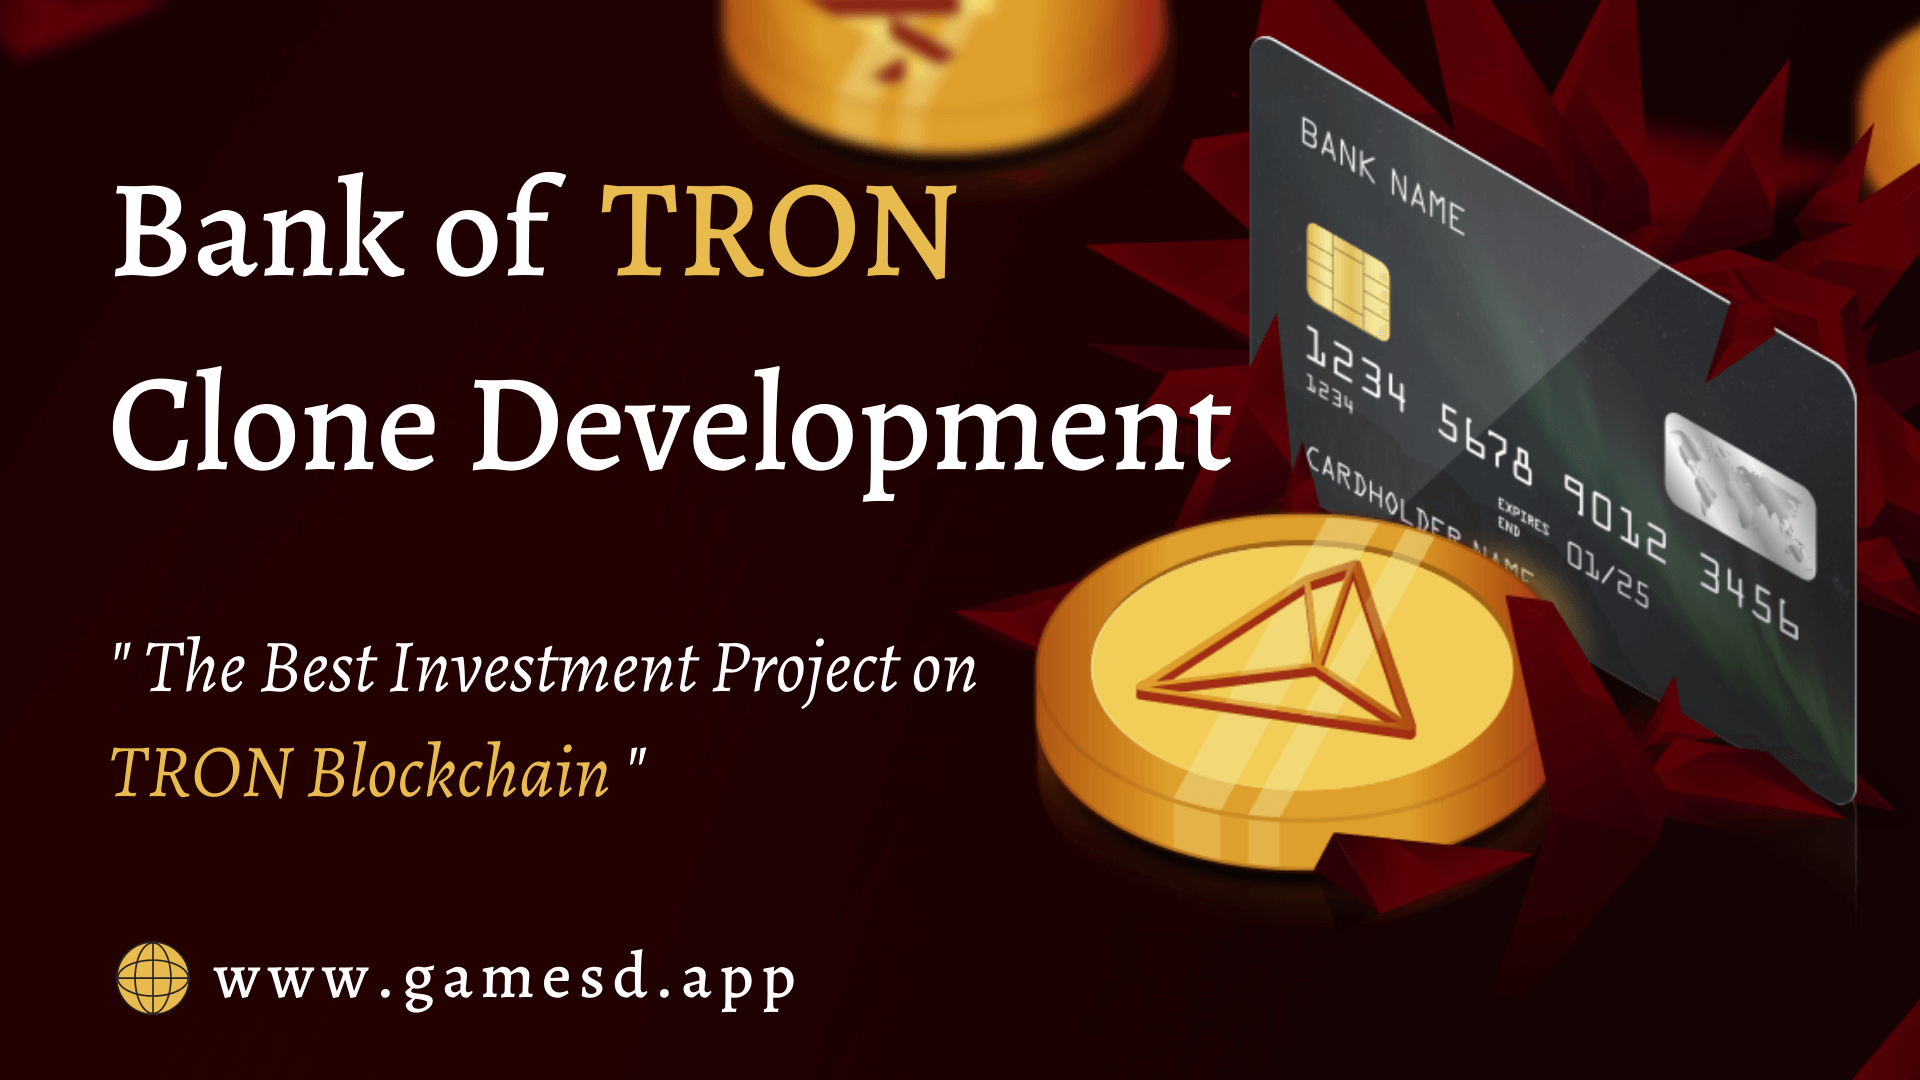 Bank of TRON Clone - To Build DEX Smart Contract Investment Platform on TRON Blockchain